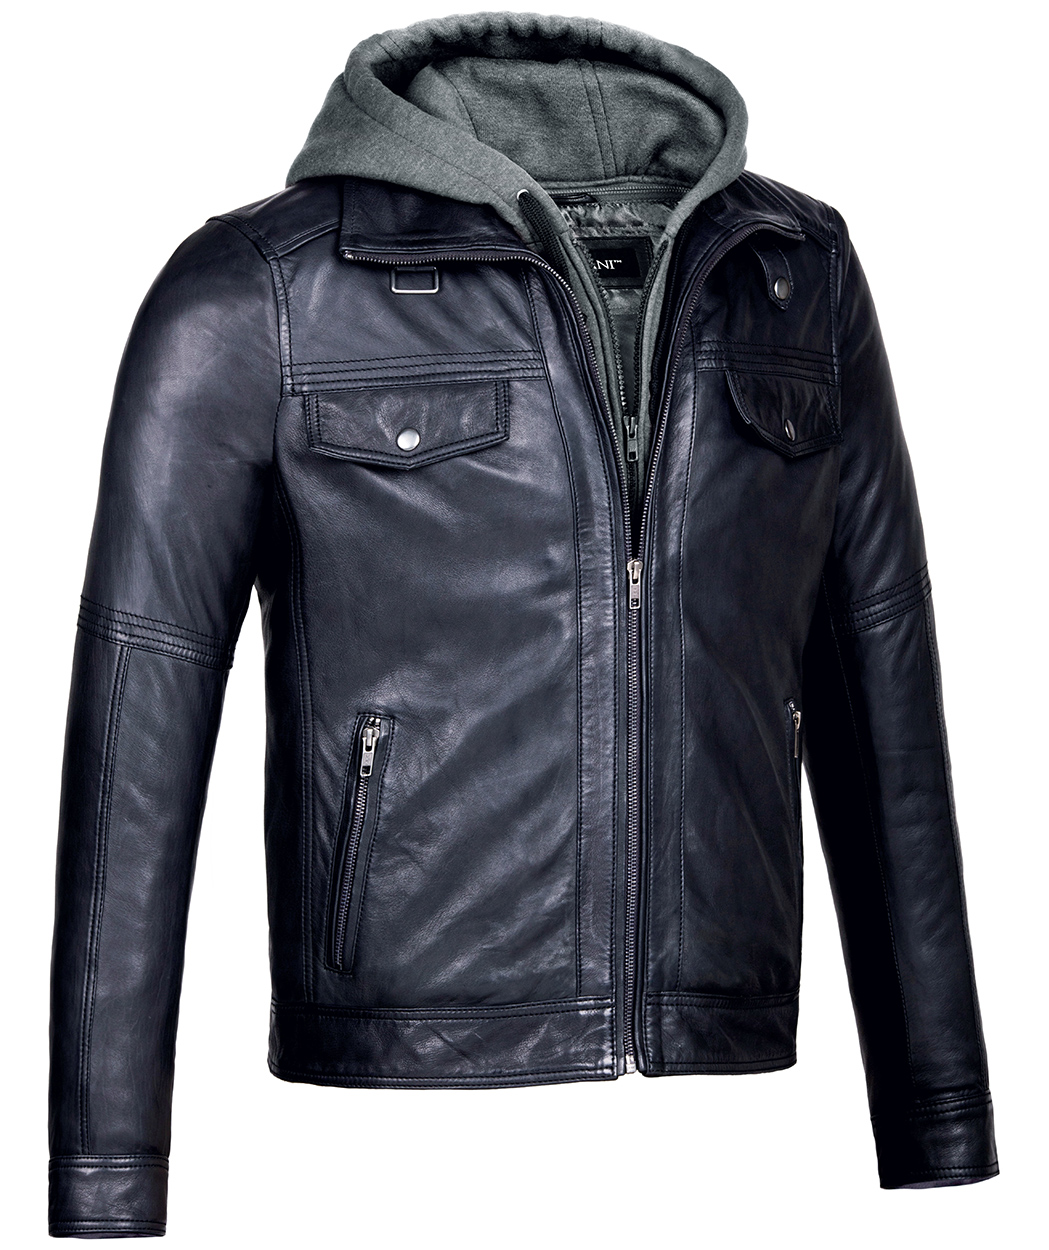 Leather jackets with hooded